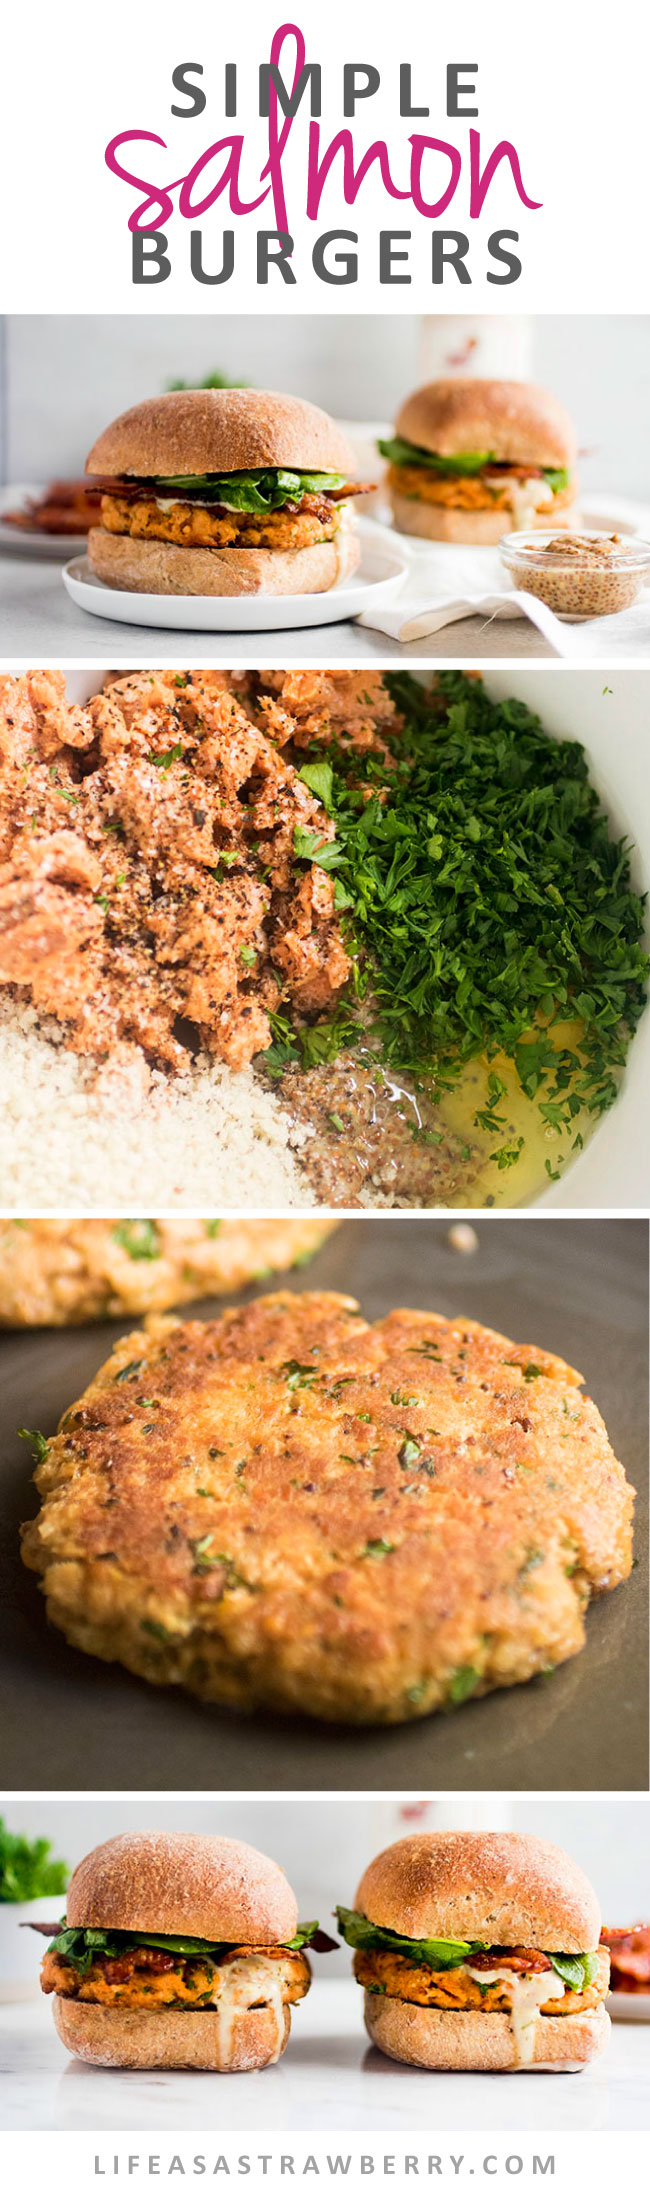 Simple Salmon Burgers with Bacon and Arugula | These easy (and sustainable!) homemade salmon patties make rich, flavorful burgers that the whole family will love. Build your salmon burger as directed or use the salmon cakes as a standalone dish for a healthy low-carb option! Patties made with easy canned salmon, topped with crispy bacon, fresh arugula, and a tasty Poblano Ranch sauce. Ready in under an hour and great baked or grilled.